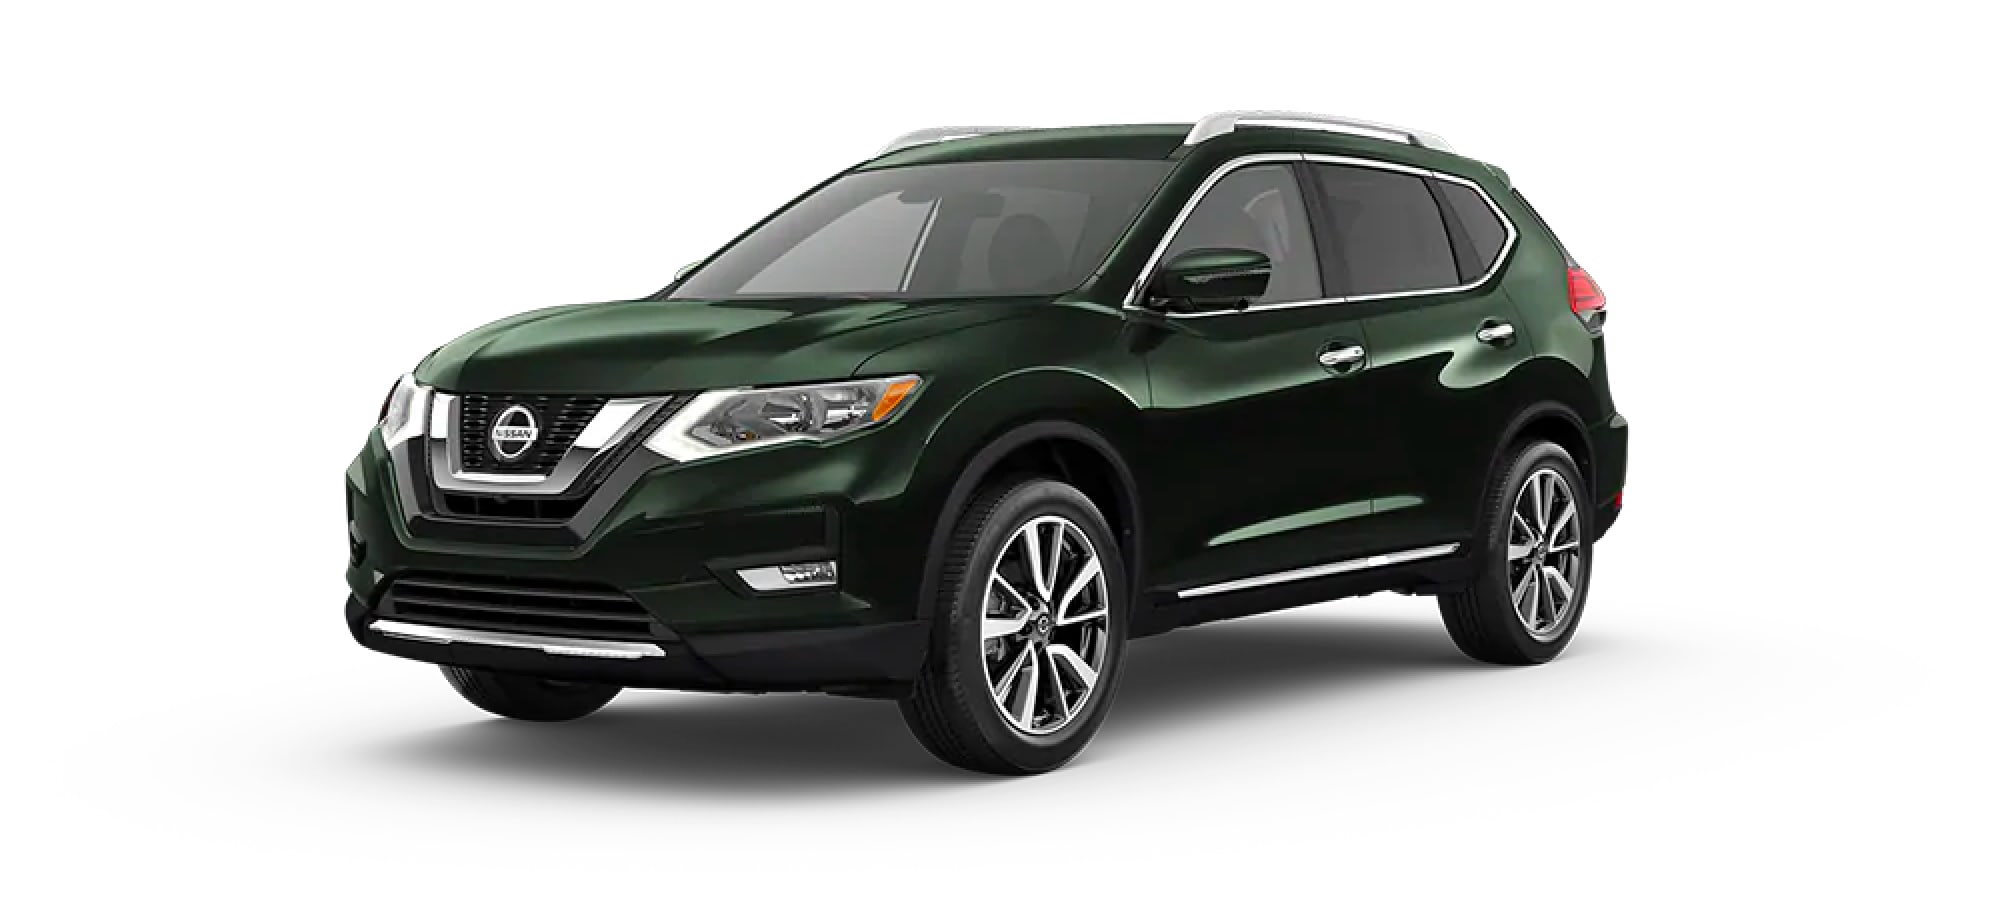 2020 Nissan Rogue in Midnight Pine Metallic